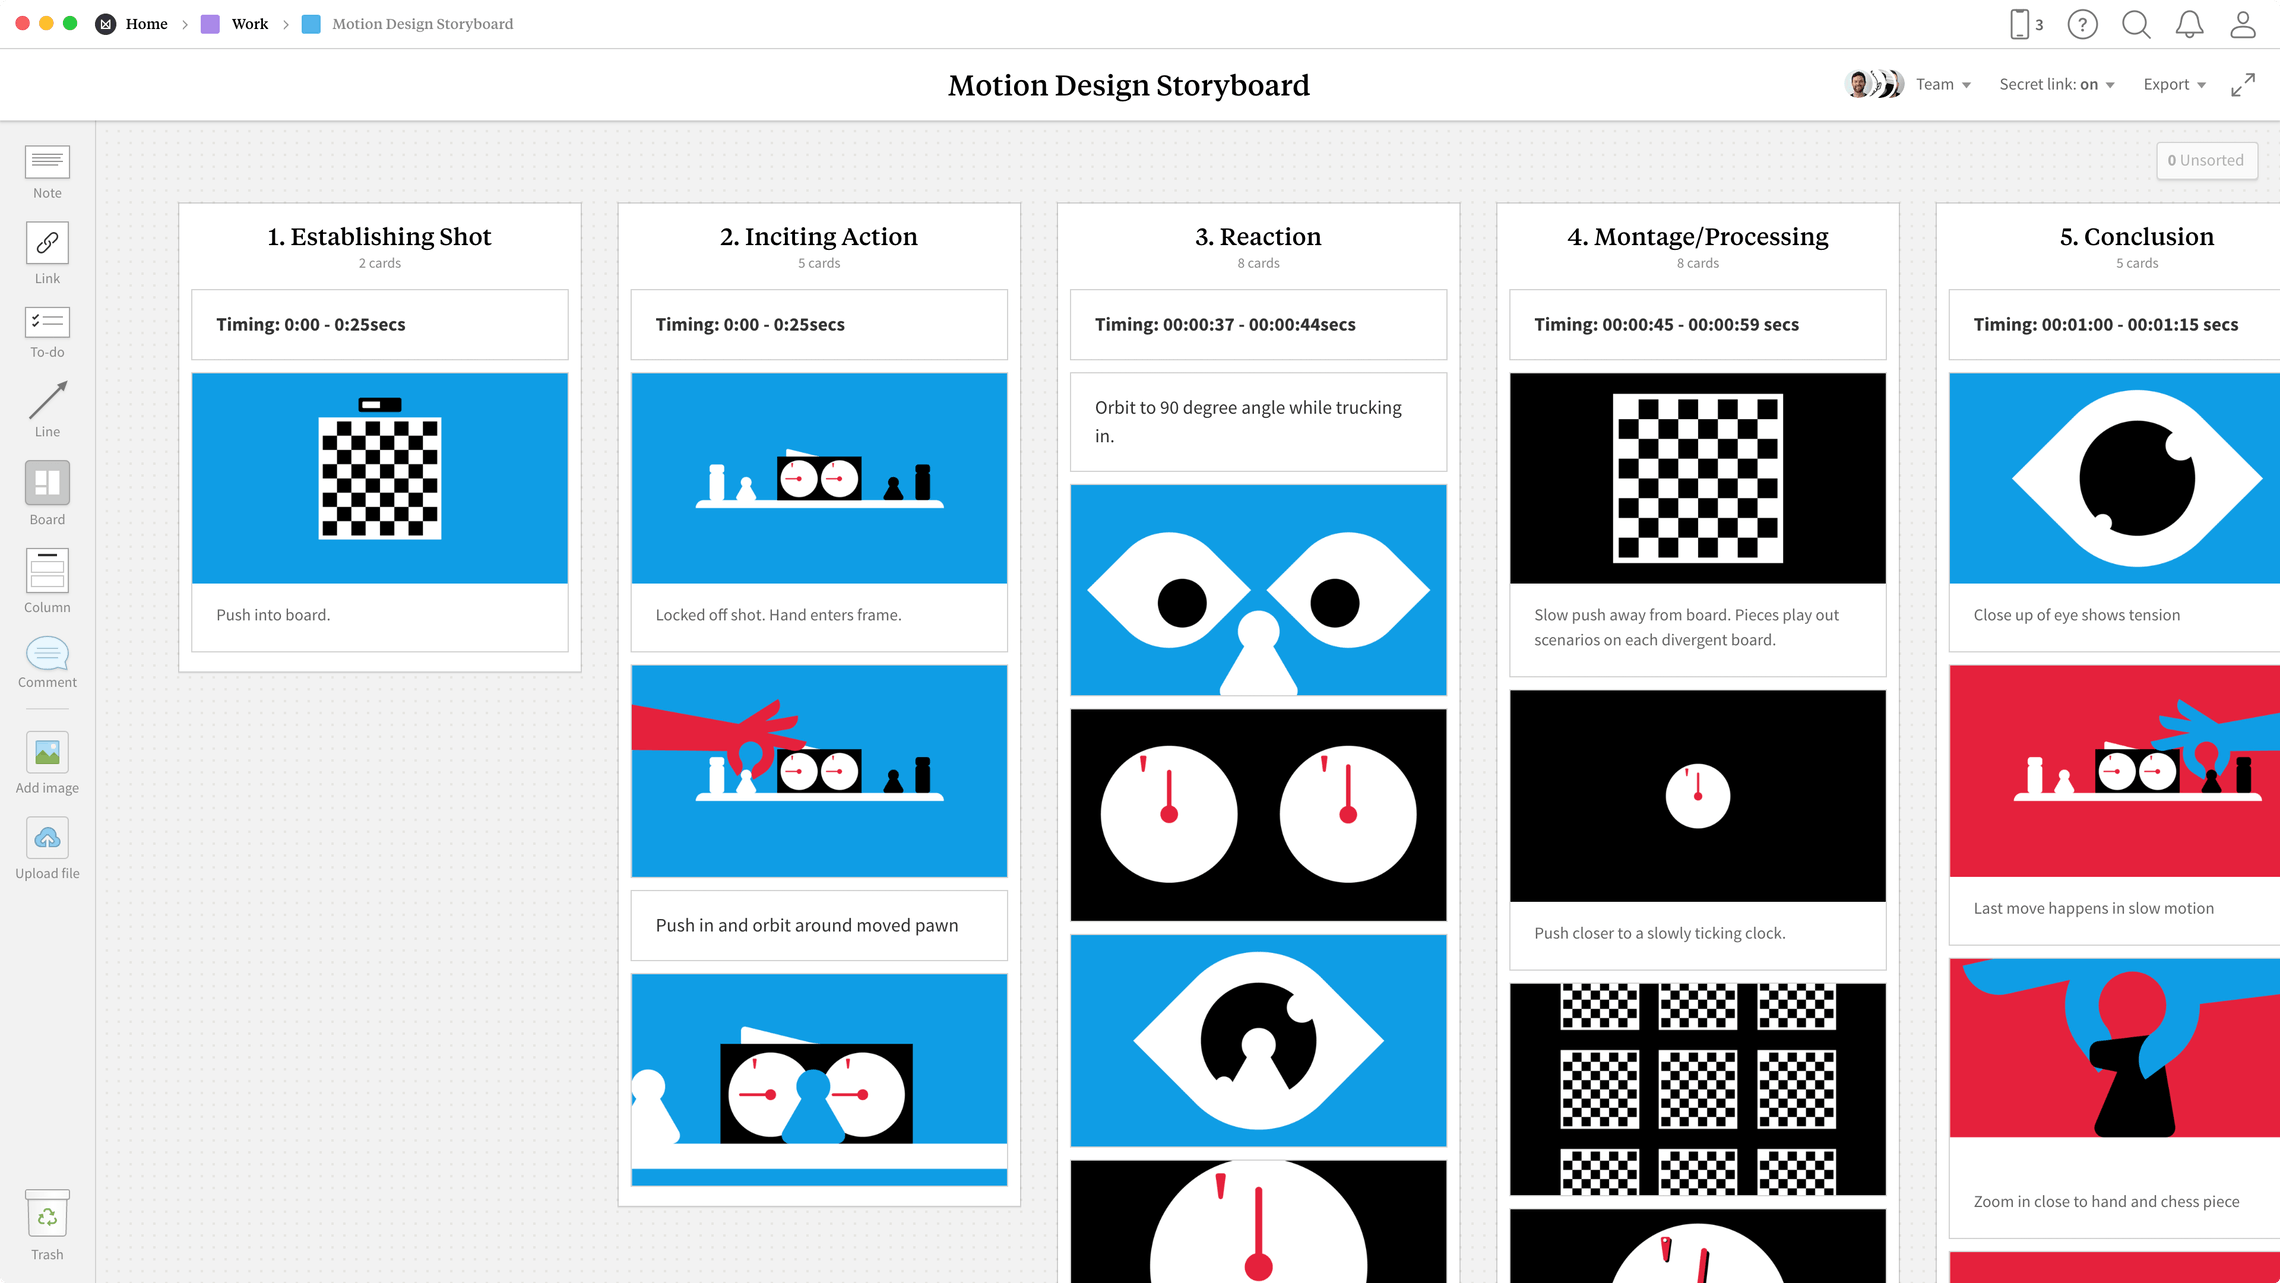 Motion Design Storyboard Template, within the Milanote app